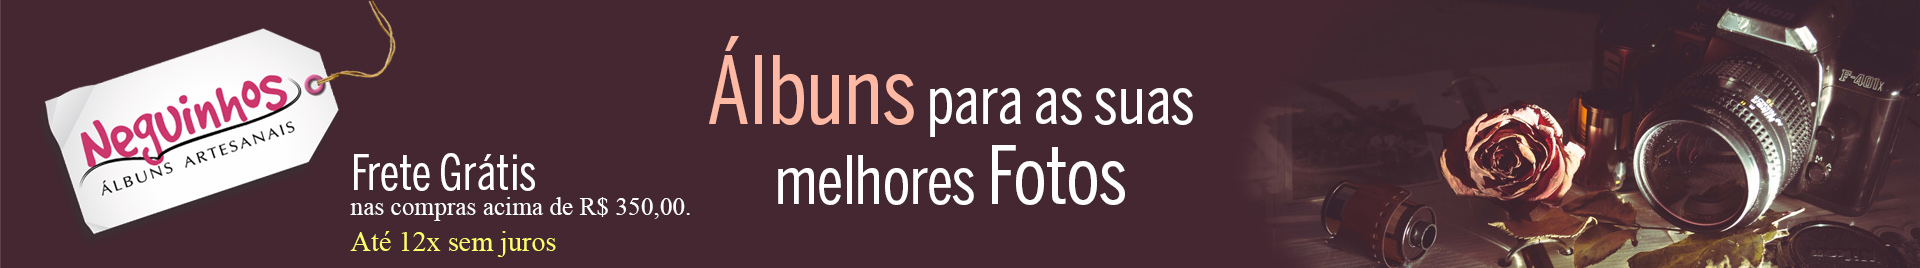 lbuns Neguinhos